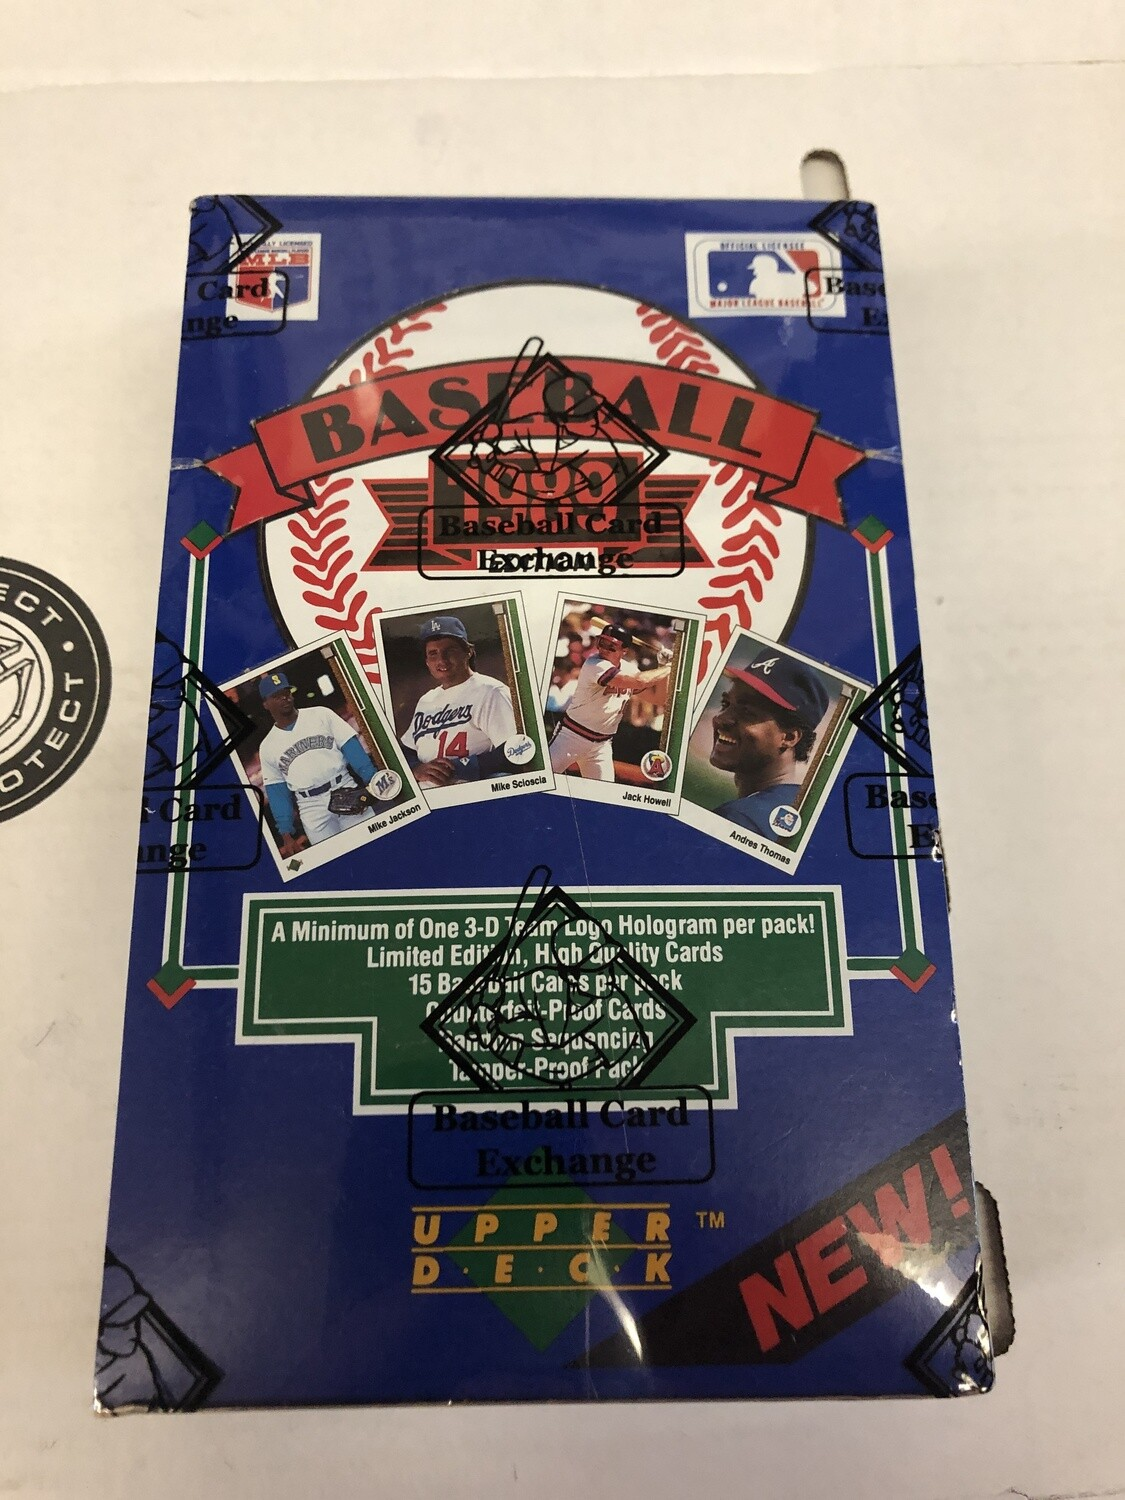 1989 Upper Deck Low # Wax Box BBCE Wrapped